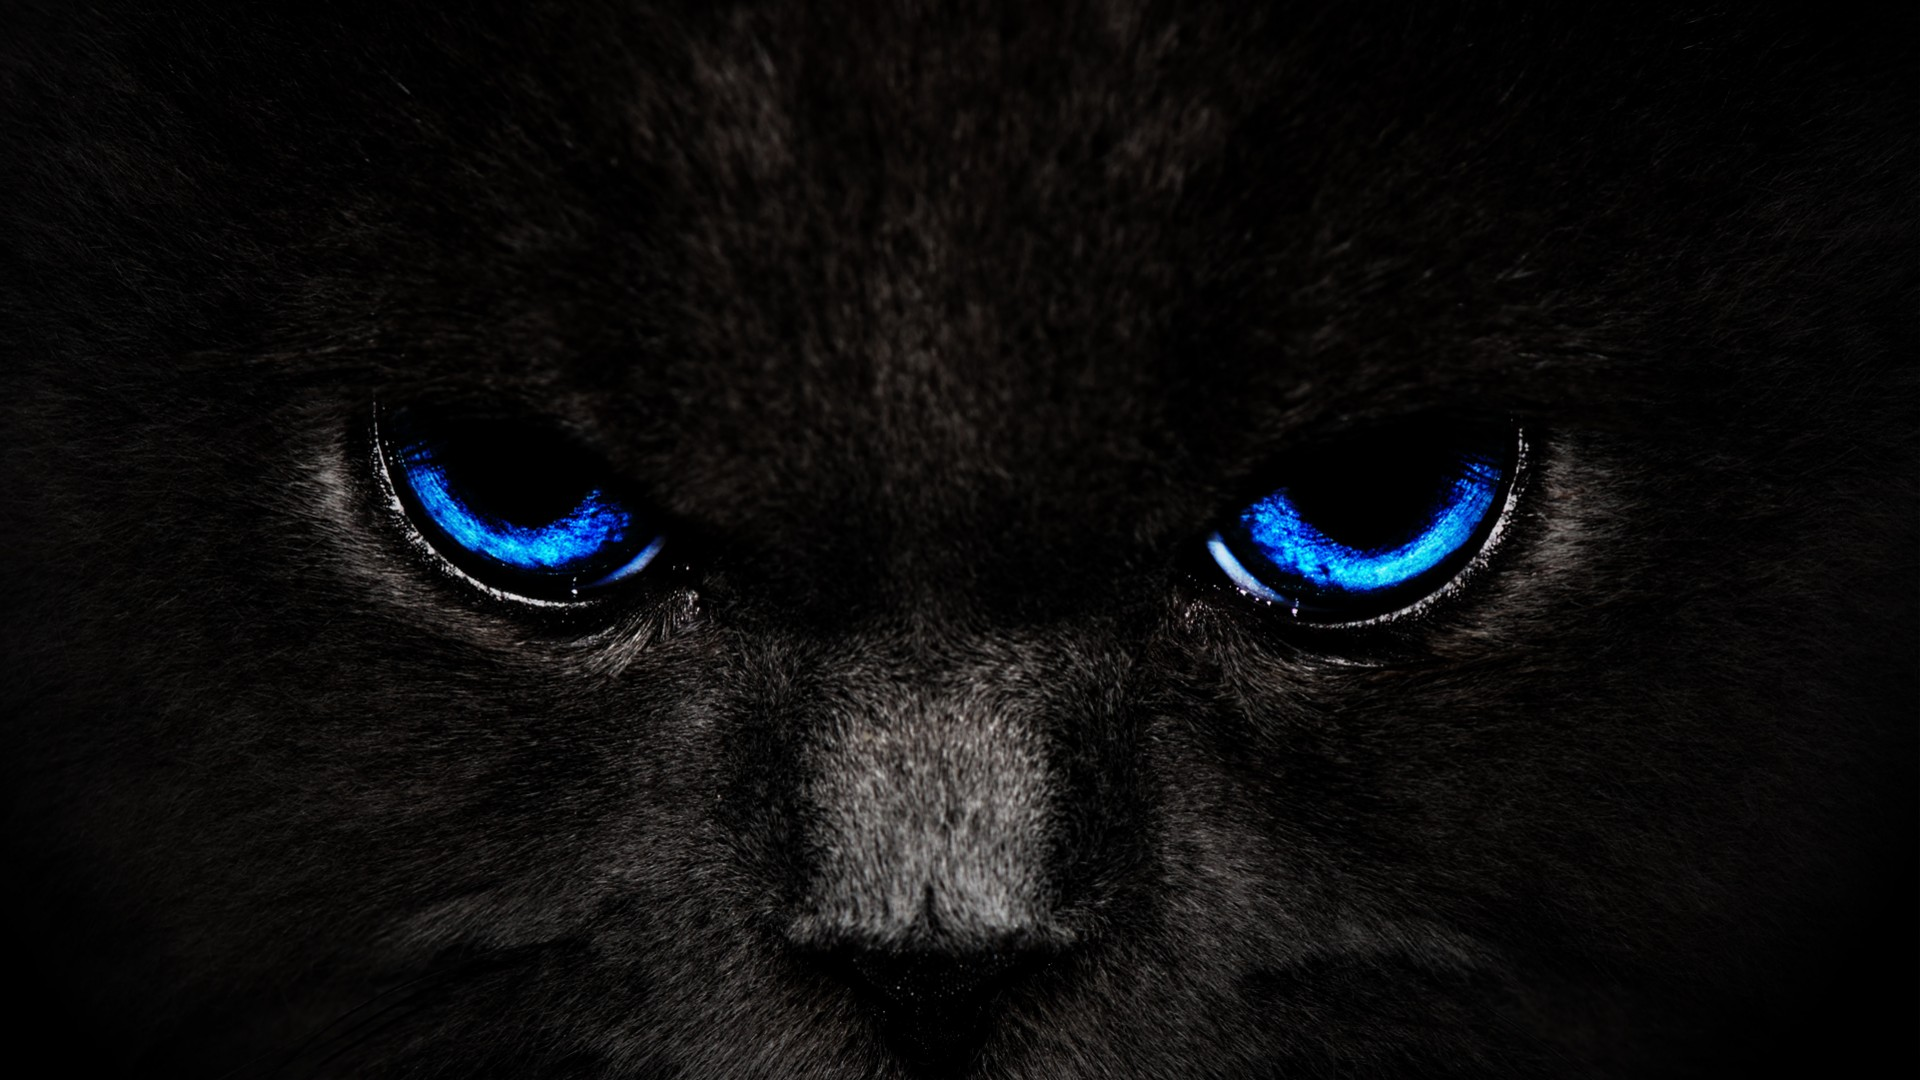 Black Cat Blue Eyes High Quality WallpapersWallpaper DesktopHigh 1920x1080